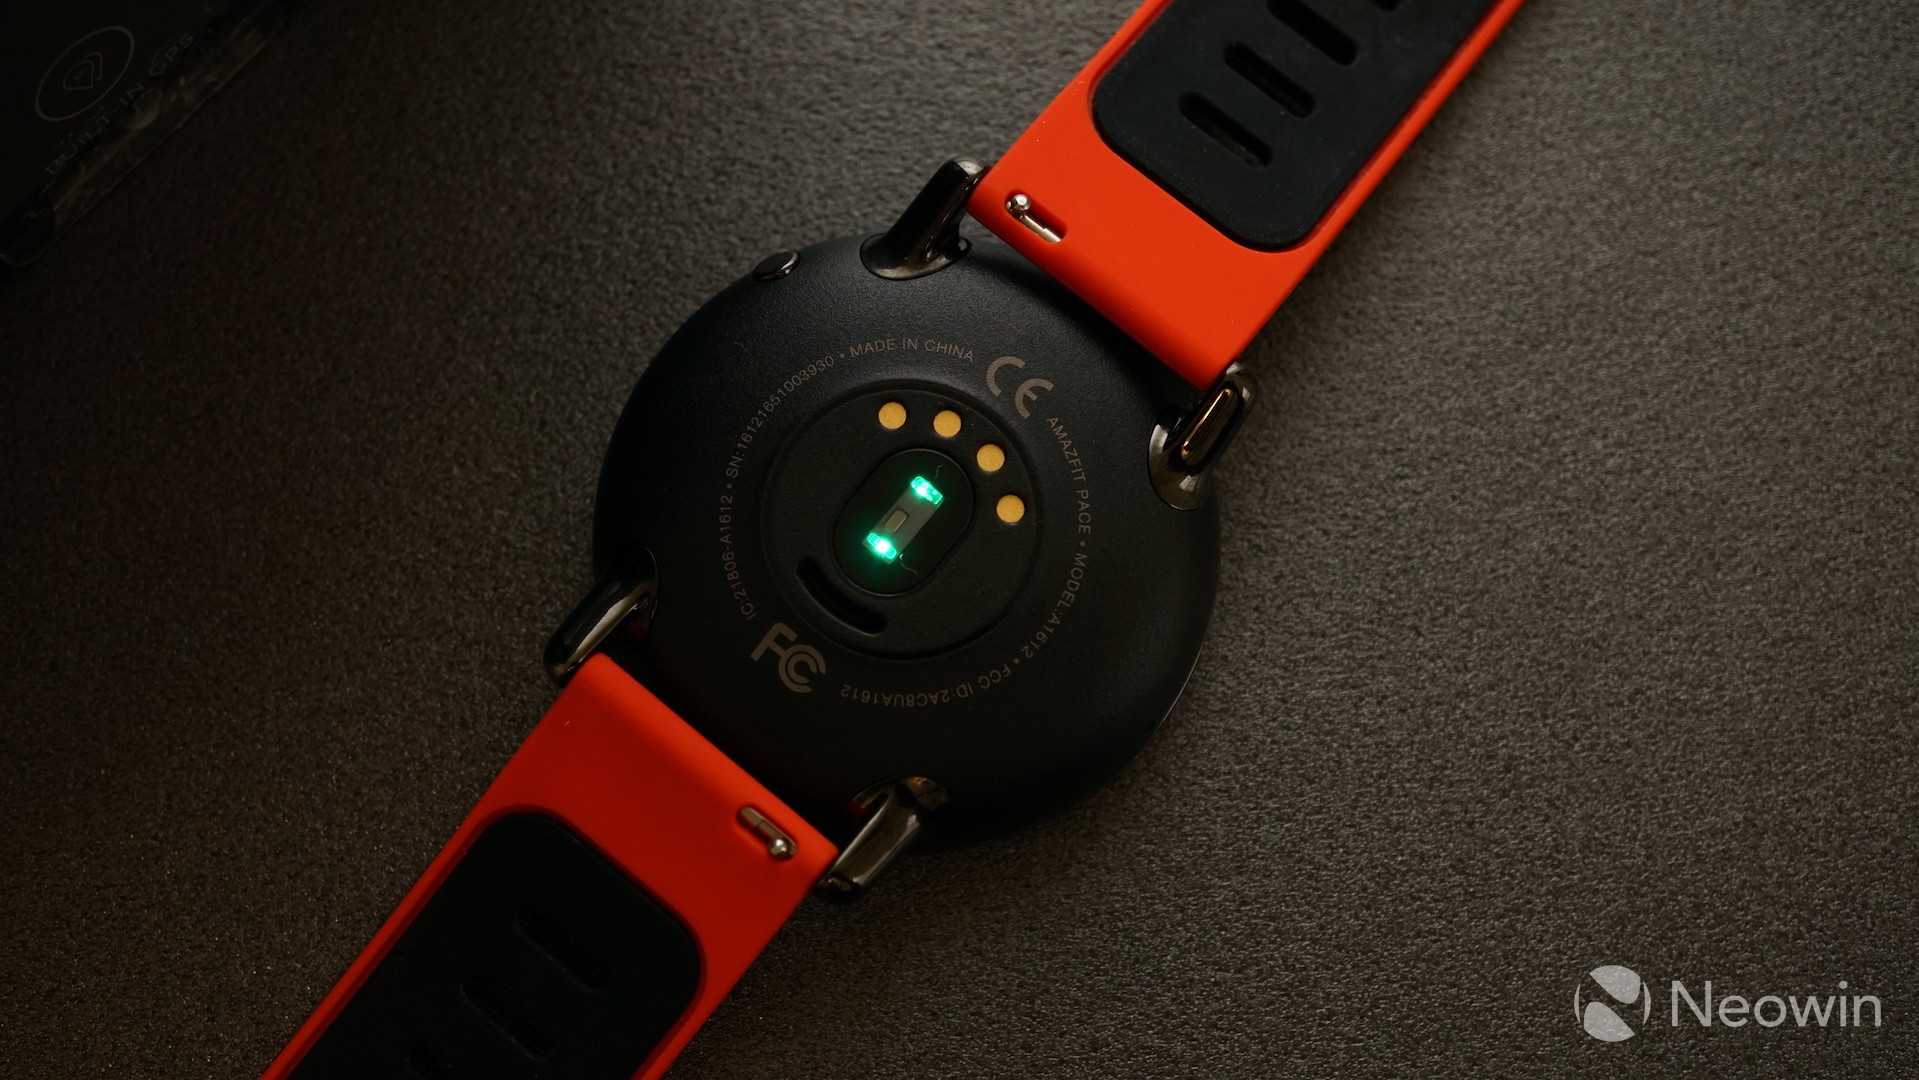 Review: Amazfit Pace is an activity tracker that needs to